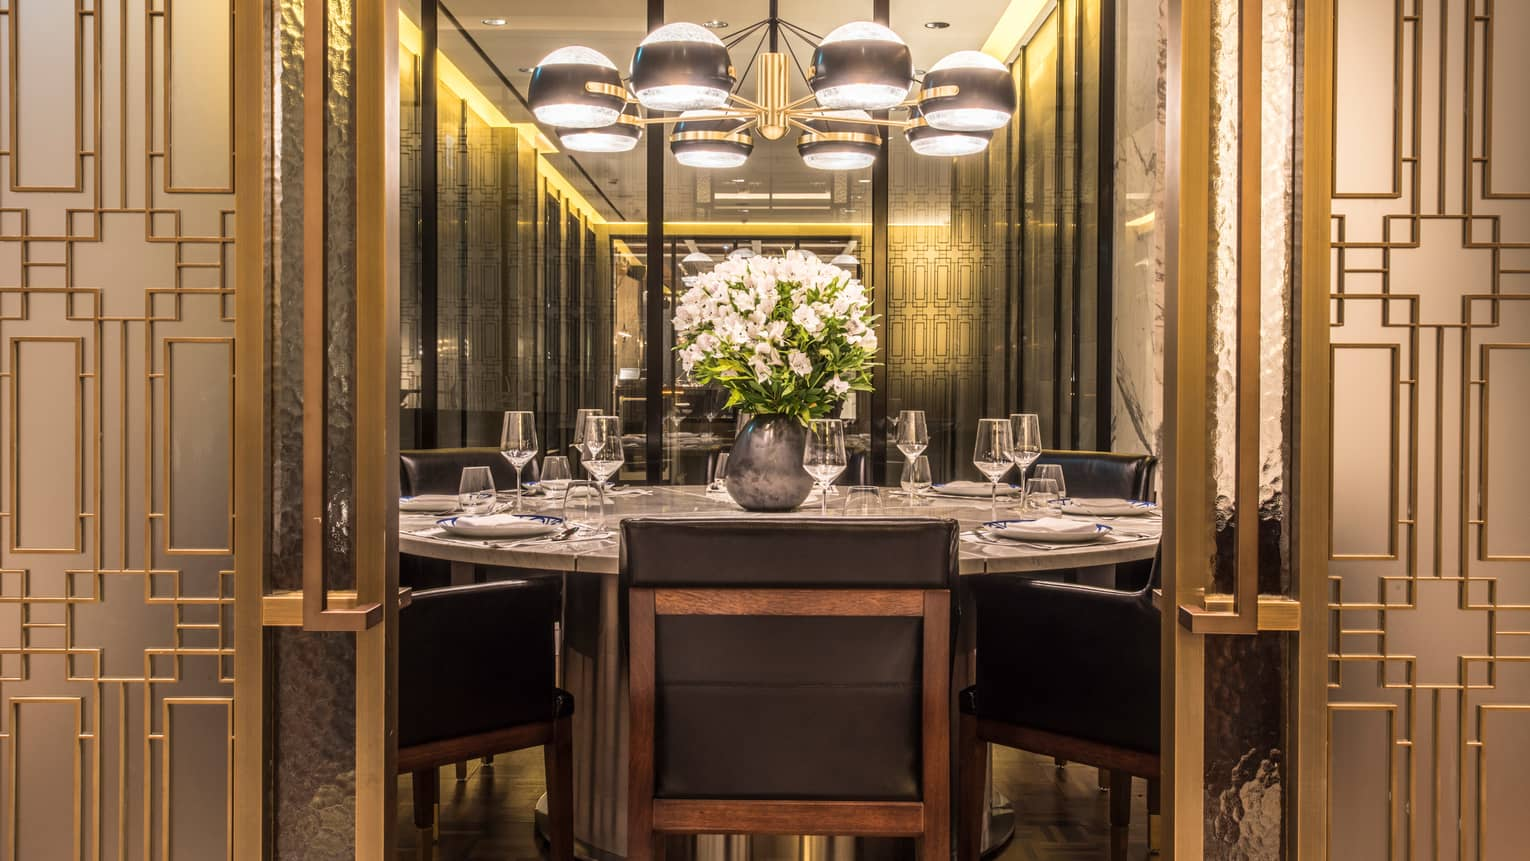 Boccalino large round private dining table under lamp beyond decorative gold screen